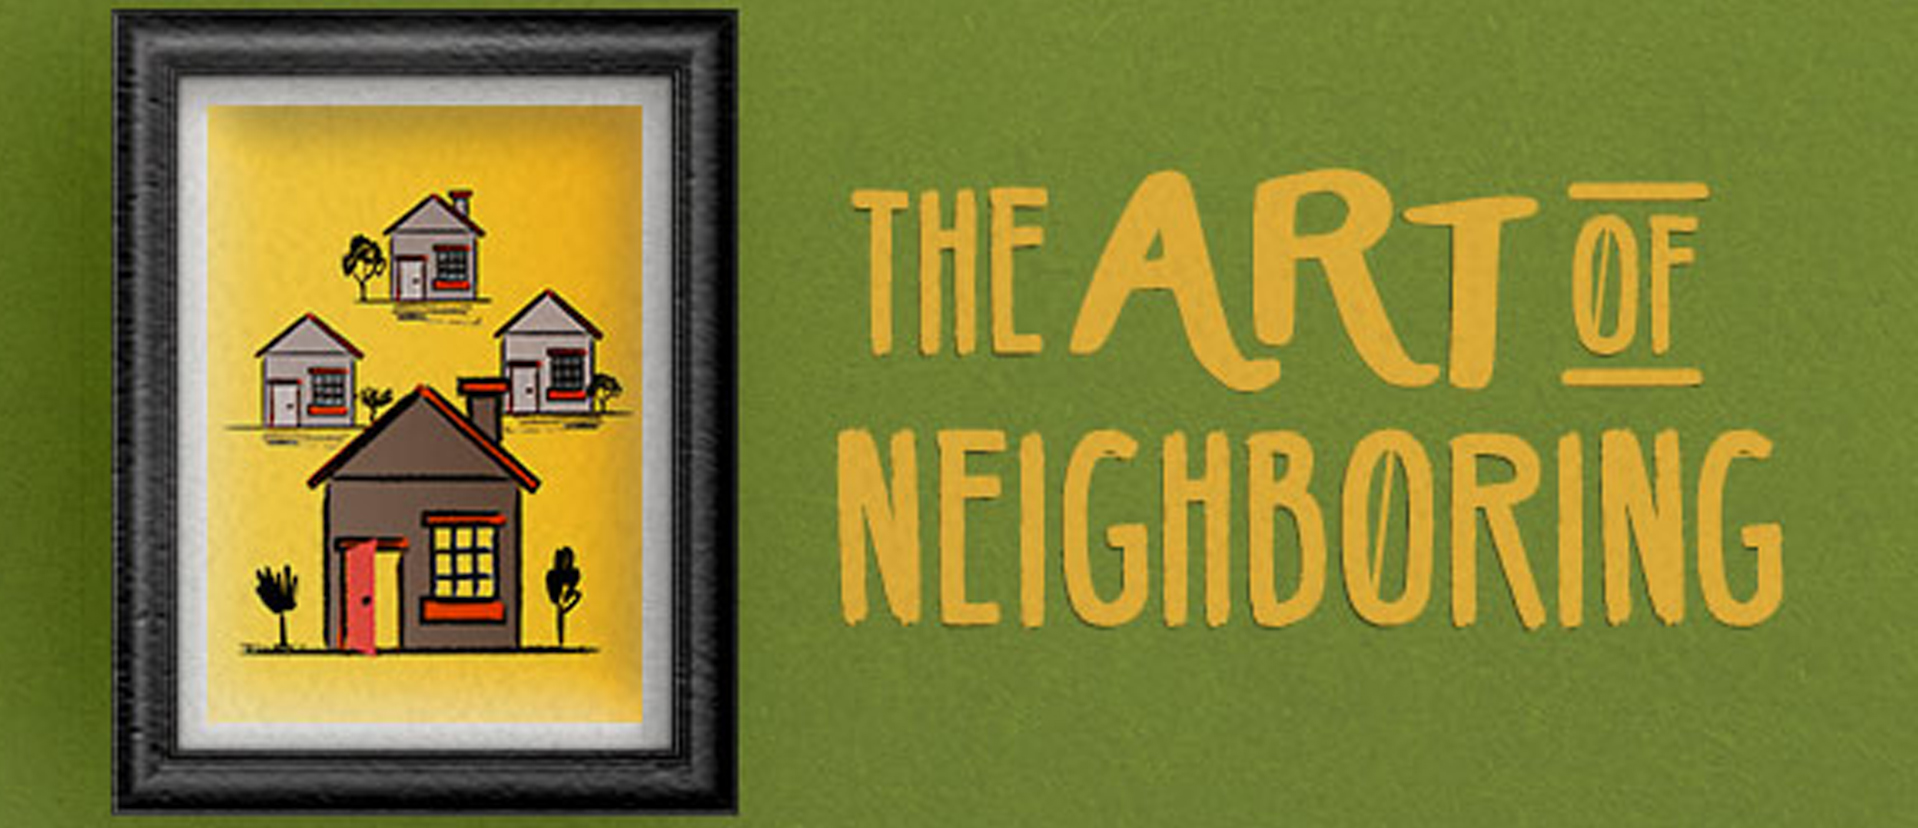 Website_Series_Header_The_Art_of_Neighboring.jpg